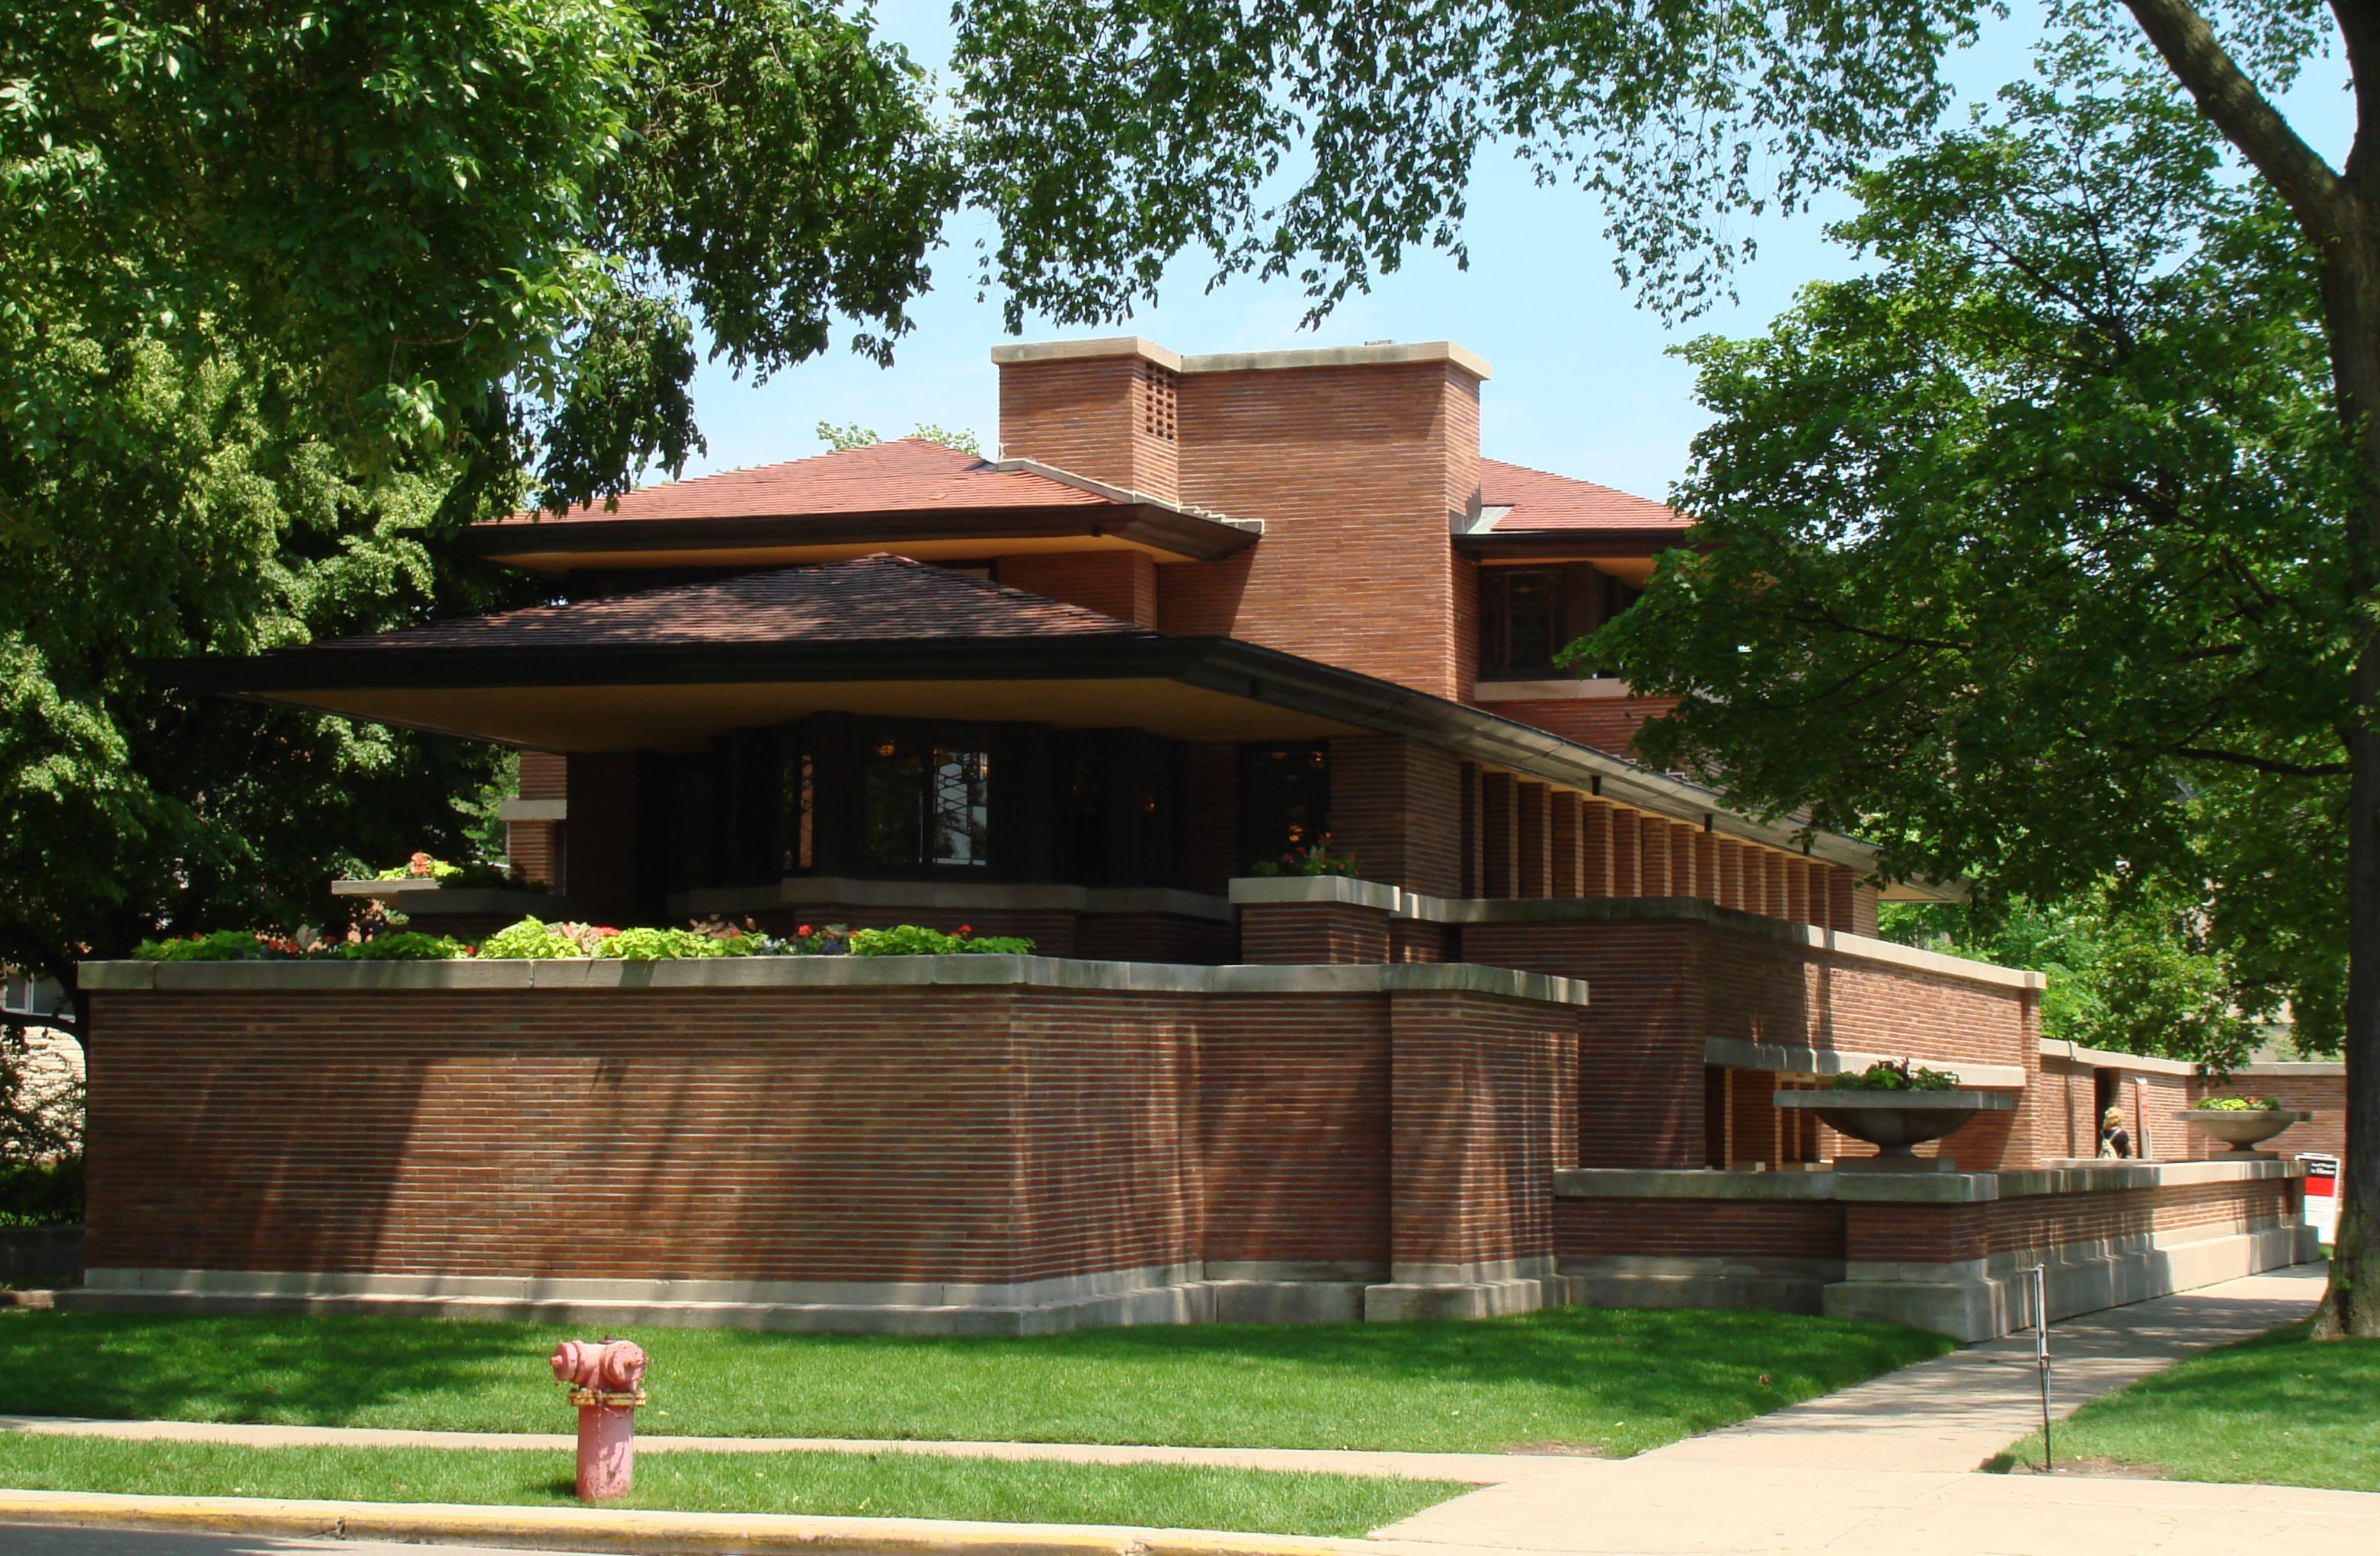 Unique robie house on home design with robie house frank for Prairie school house plans